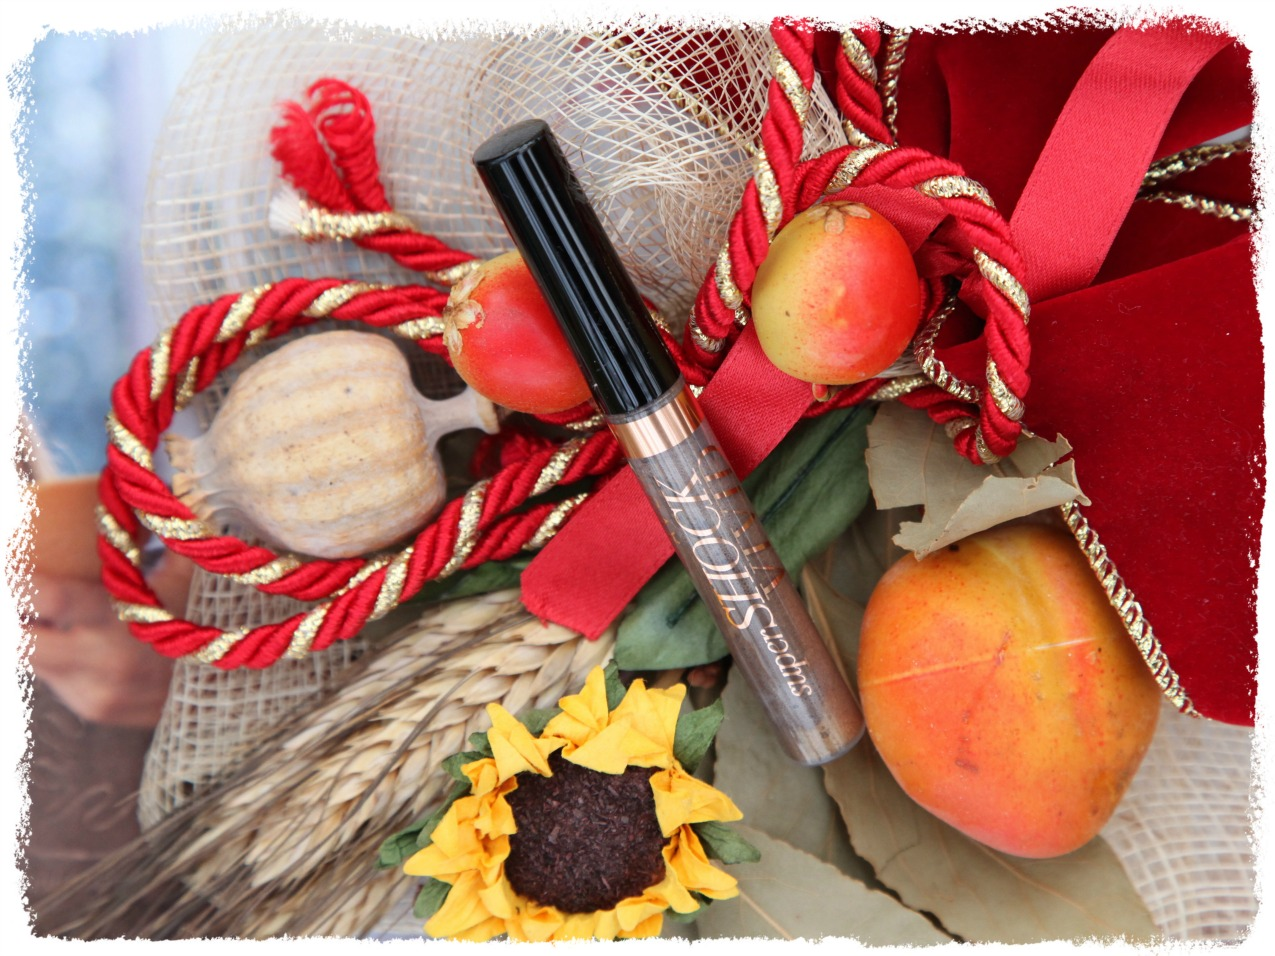 Baci, fiori e il make up delle feste, alessia milanese, thechilicool, fashion blog, fashion blogger, avon make up